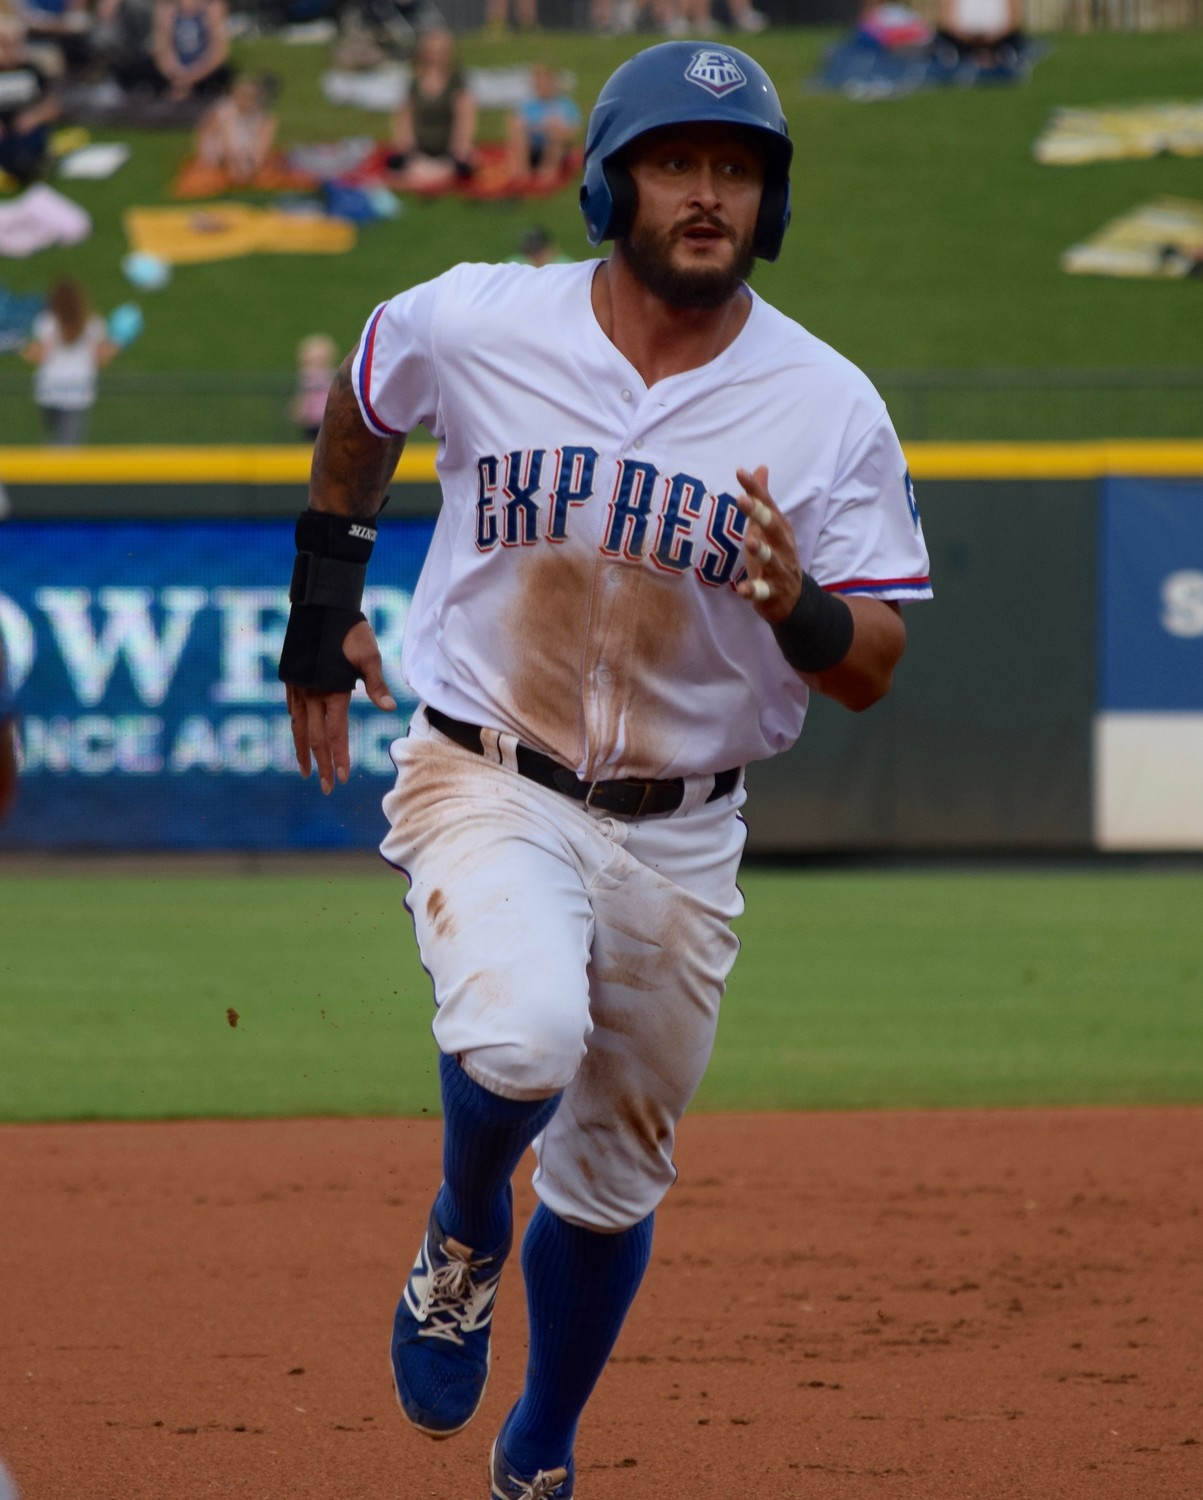 Christian Lopes started this season hot and was named PCL Player of the Week early in the year. He spent most of his time in Round Rock starting and producing at second base.